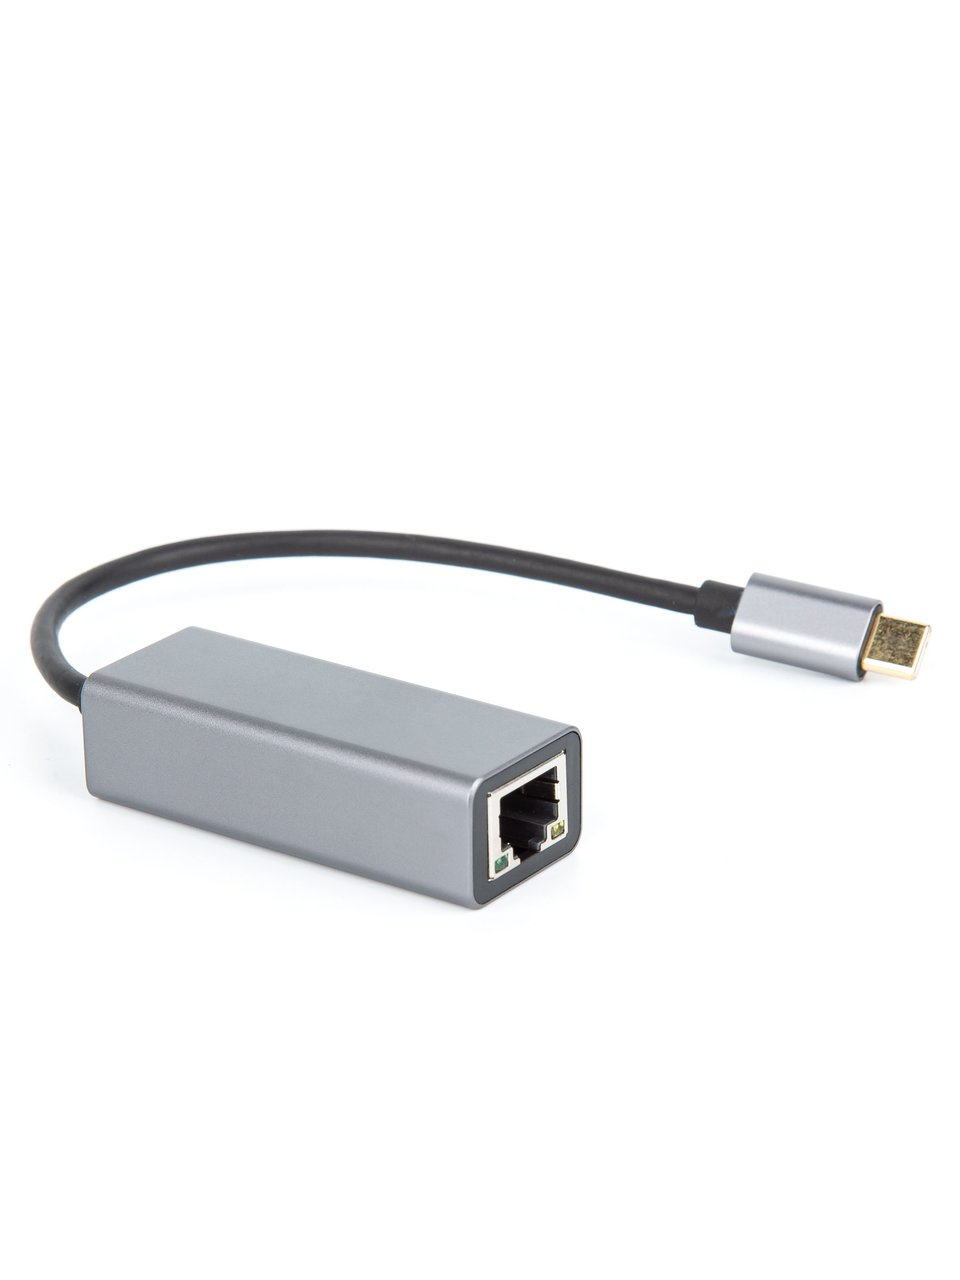 Фото - Переходник USB Type-C - RJ-45 VCOM DU320M, 0.15 м 1000Mbps переходник usb type c displayport lenovo 4x90q93303